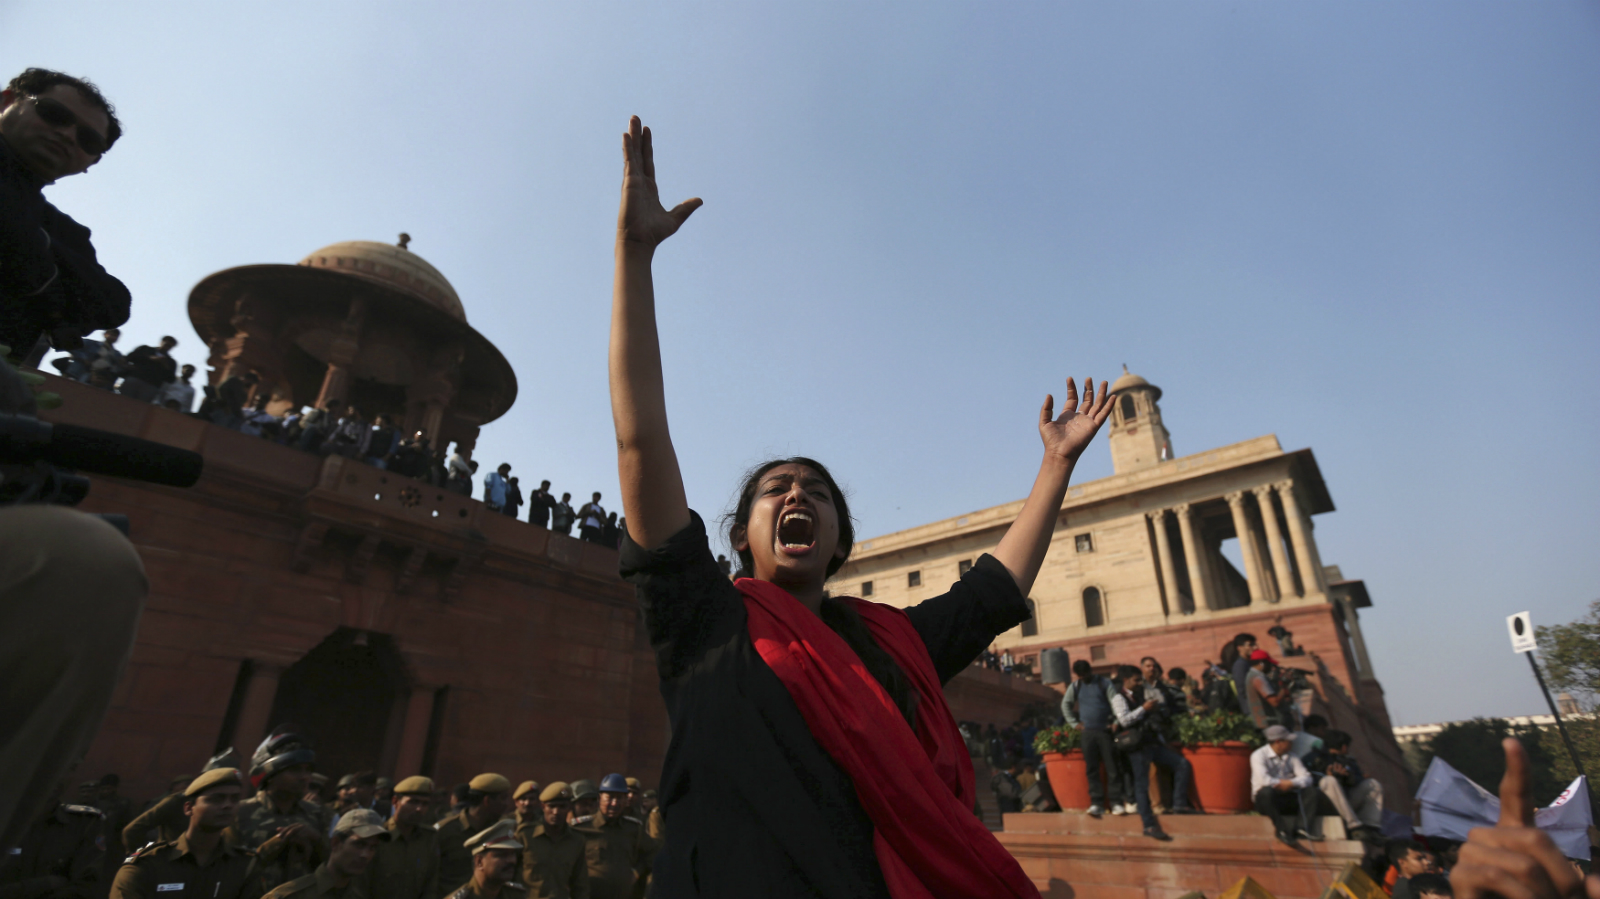 A demonstrator shouts slogans during a protest rally near the presidential palace in New Delhi December 22, 2012. Indian police used batons, tear gas and water cannon to turn back thousands of people marching on the presidential palace on Saturday in intensifying protests against the gang-rape of a woman on the streets and on social media. REUTERS/Ahmad Masood (INDIA - Tags: CRIME LAW CIVIL UNREST)